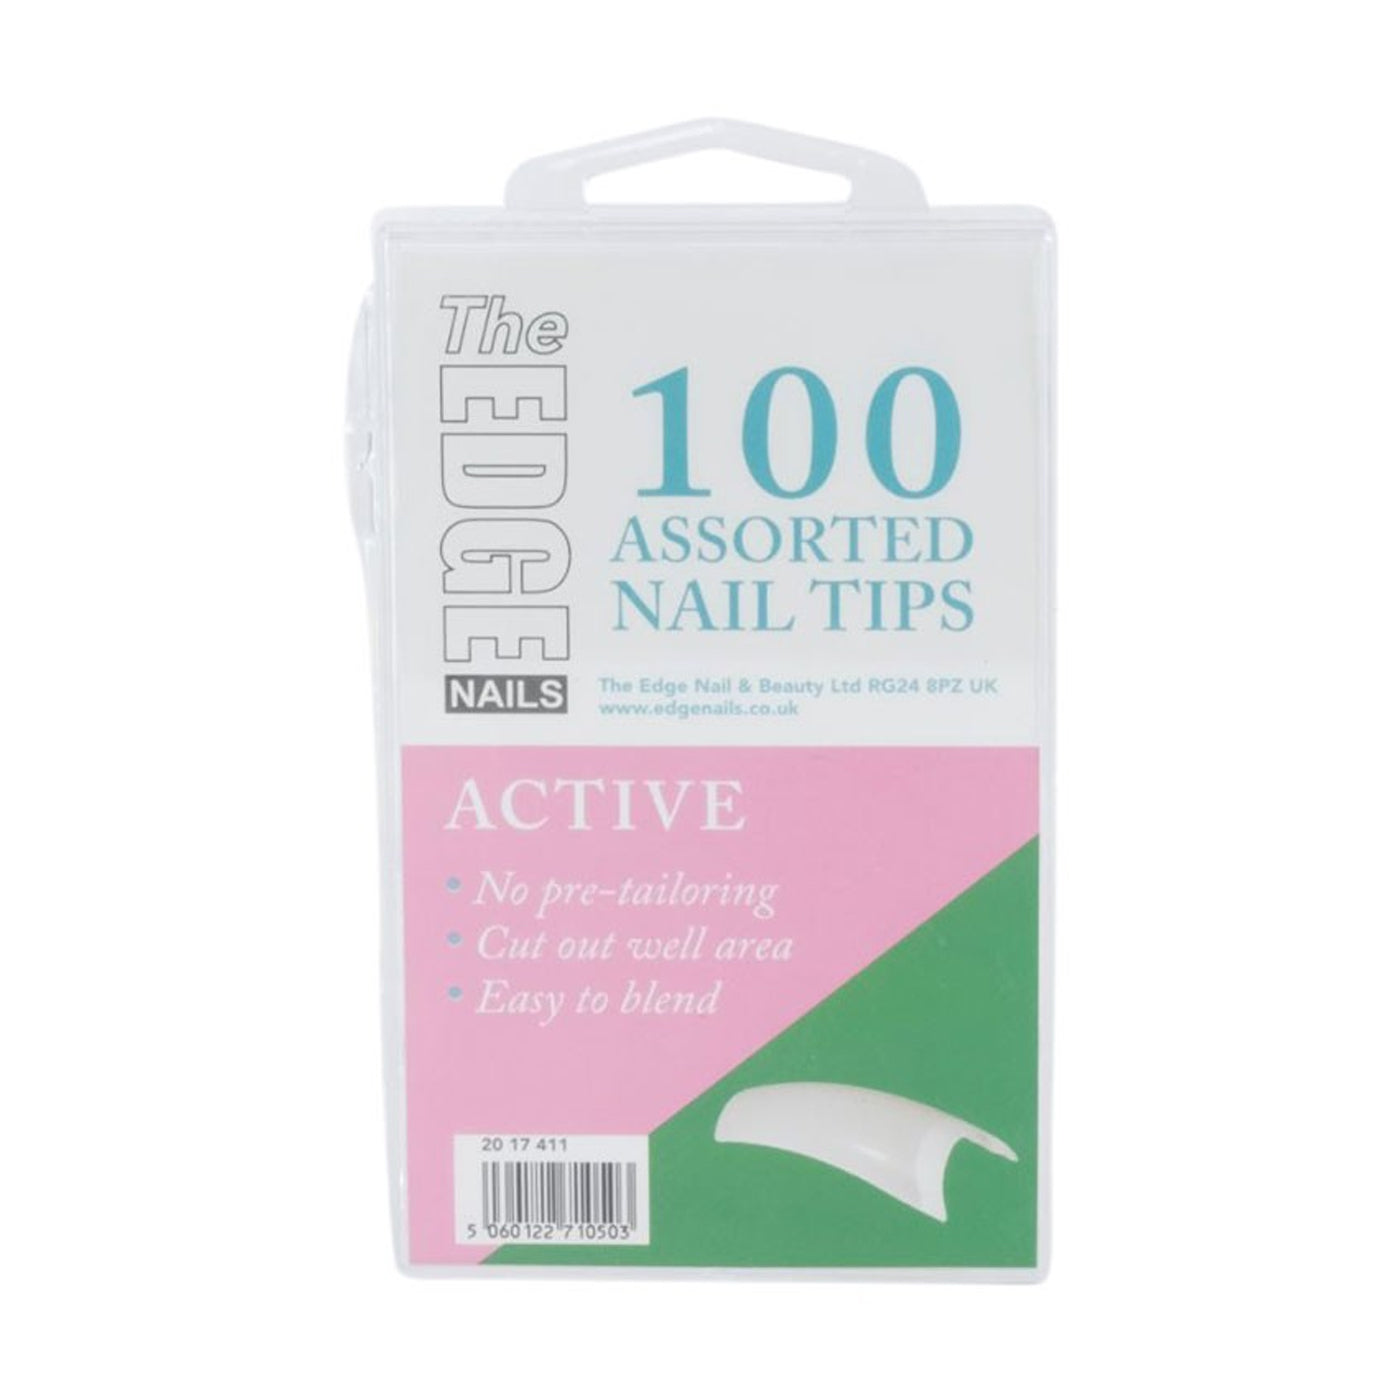 Edge Nails Active Tips Assorted Pack (x100) - Ultimate Hair and Beauty